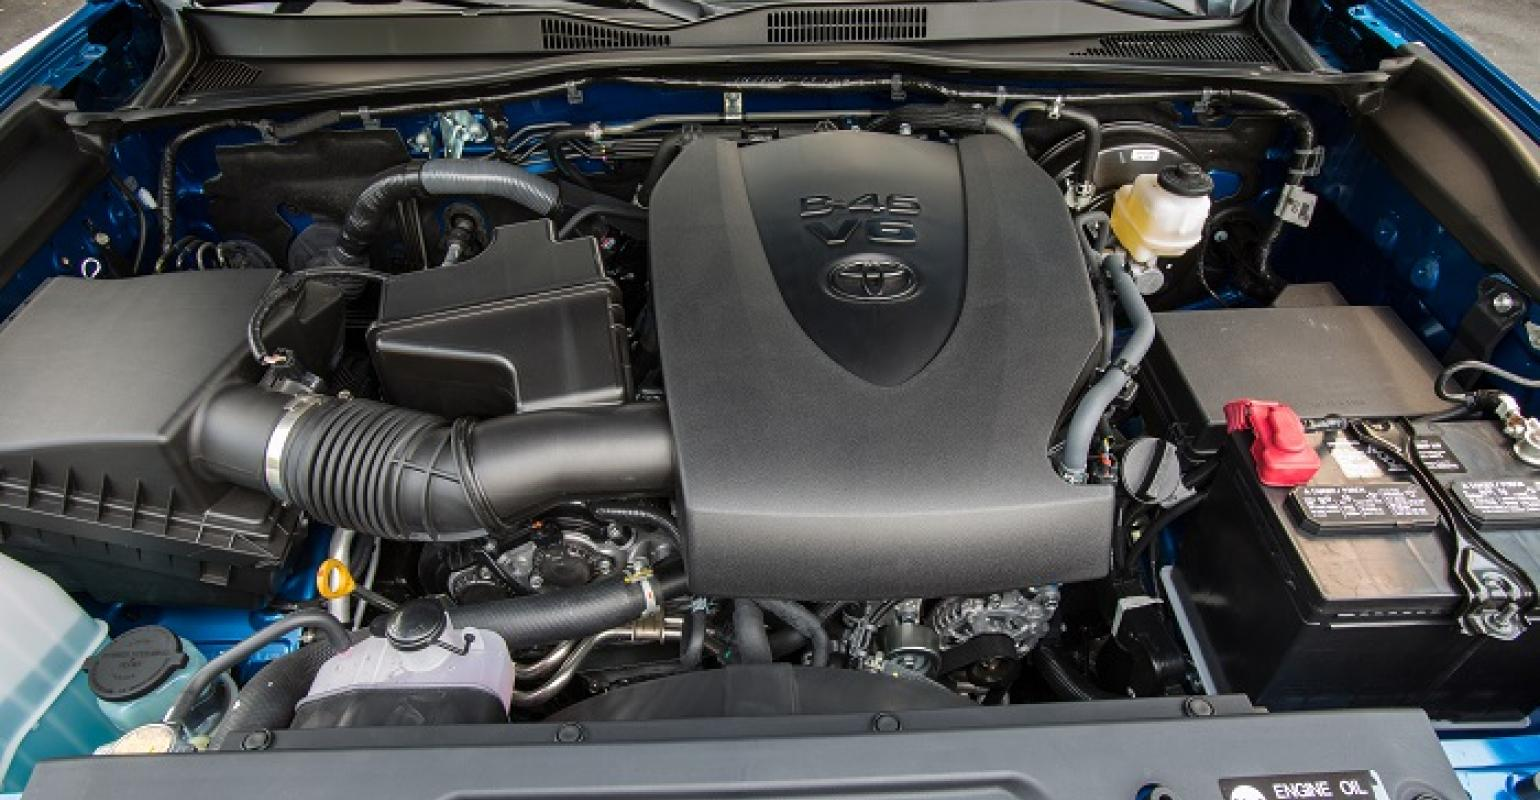 toyota advances d4s with self cleaning feature on tacoma For a Dodge Charger 3.5L V6 Engine